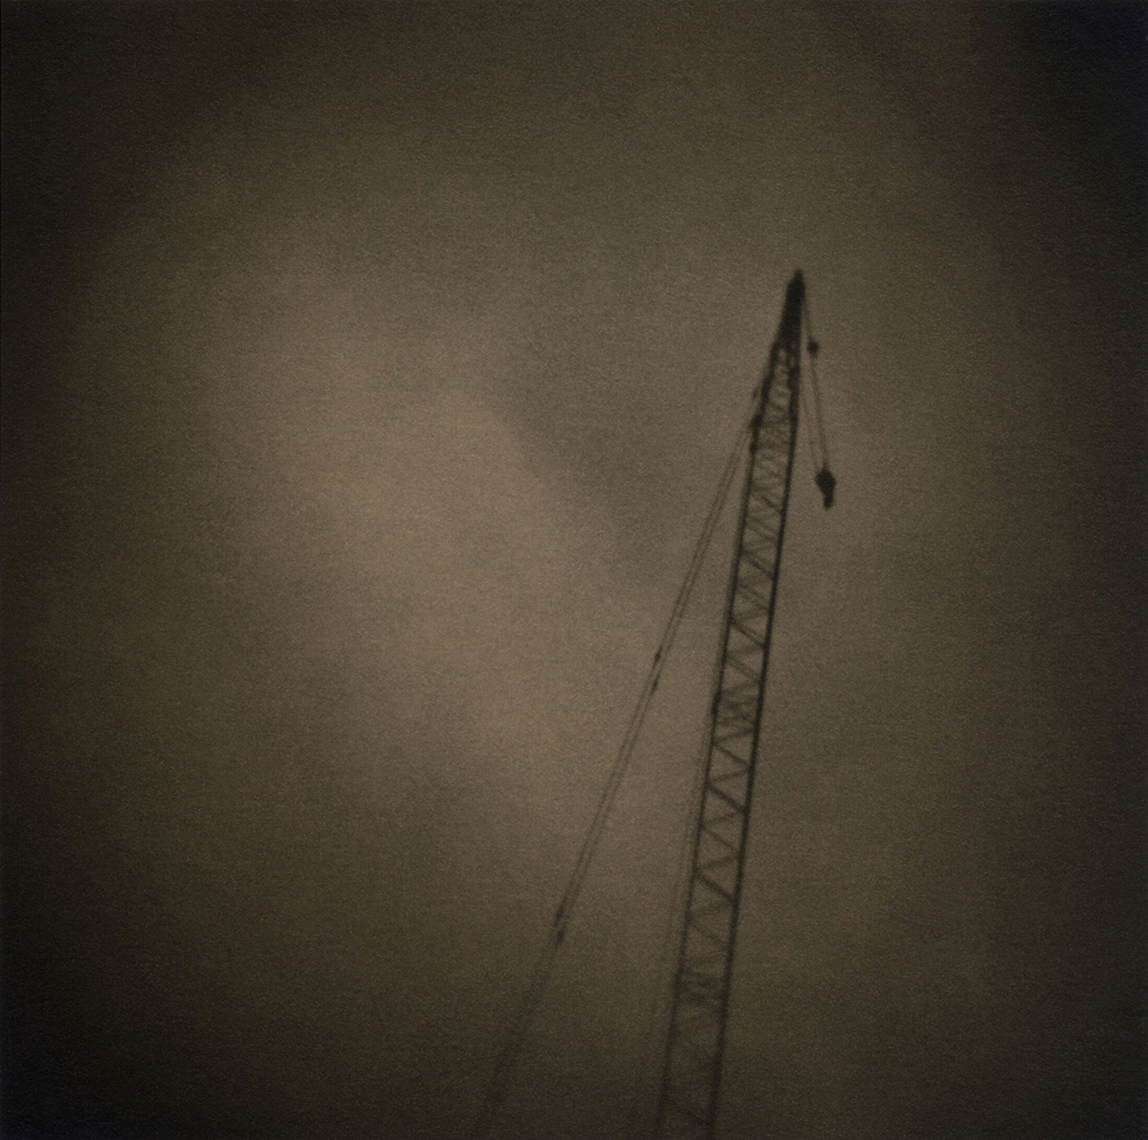 HOLGA_UntitledCrane_Lithography_Retouched_Web